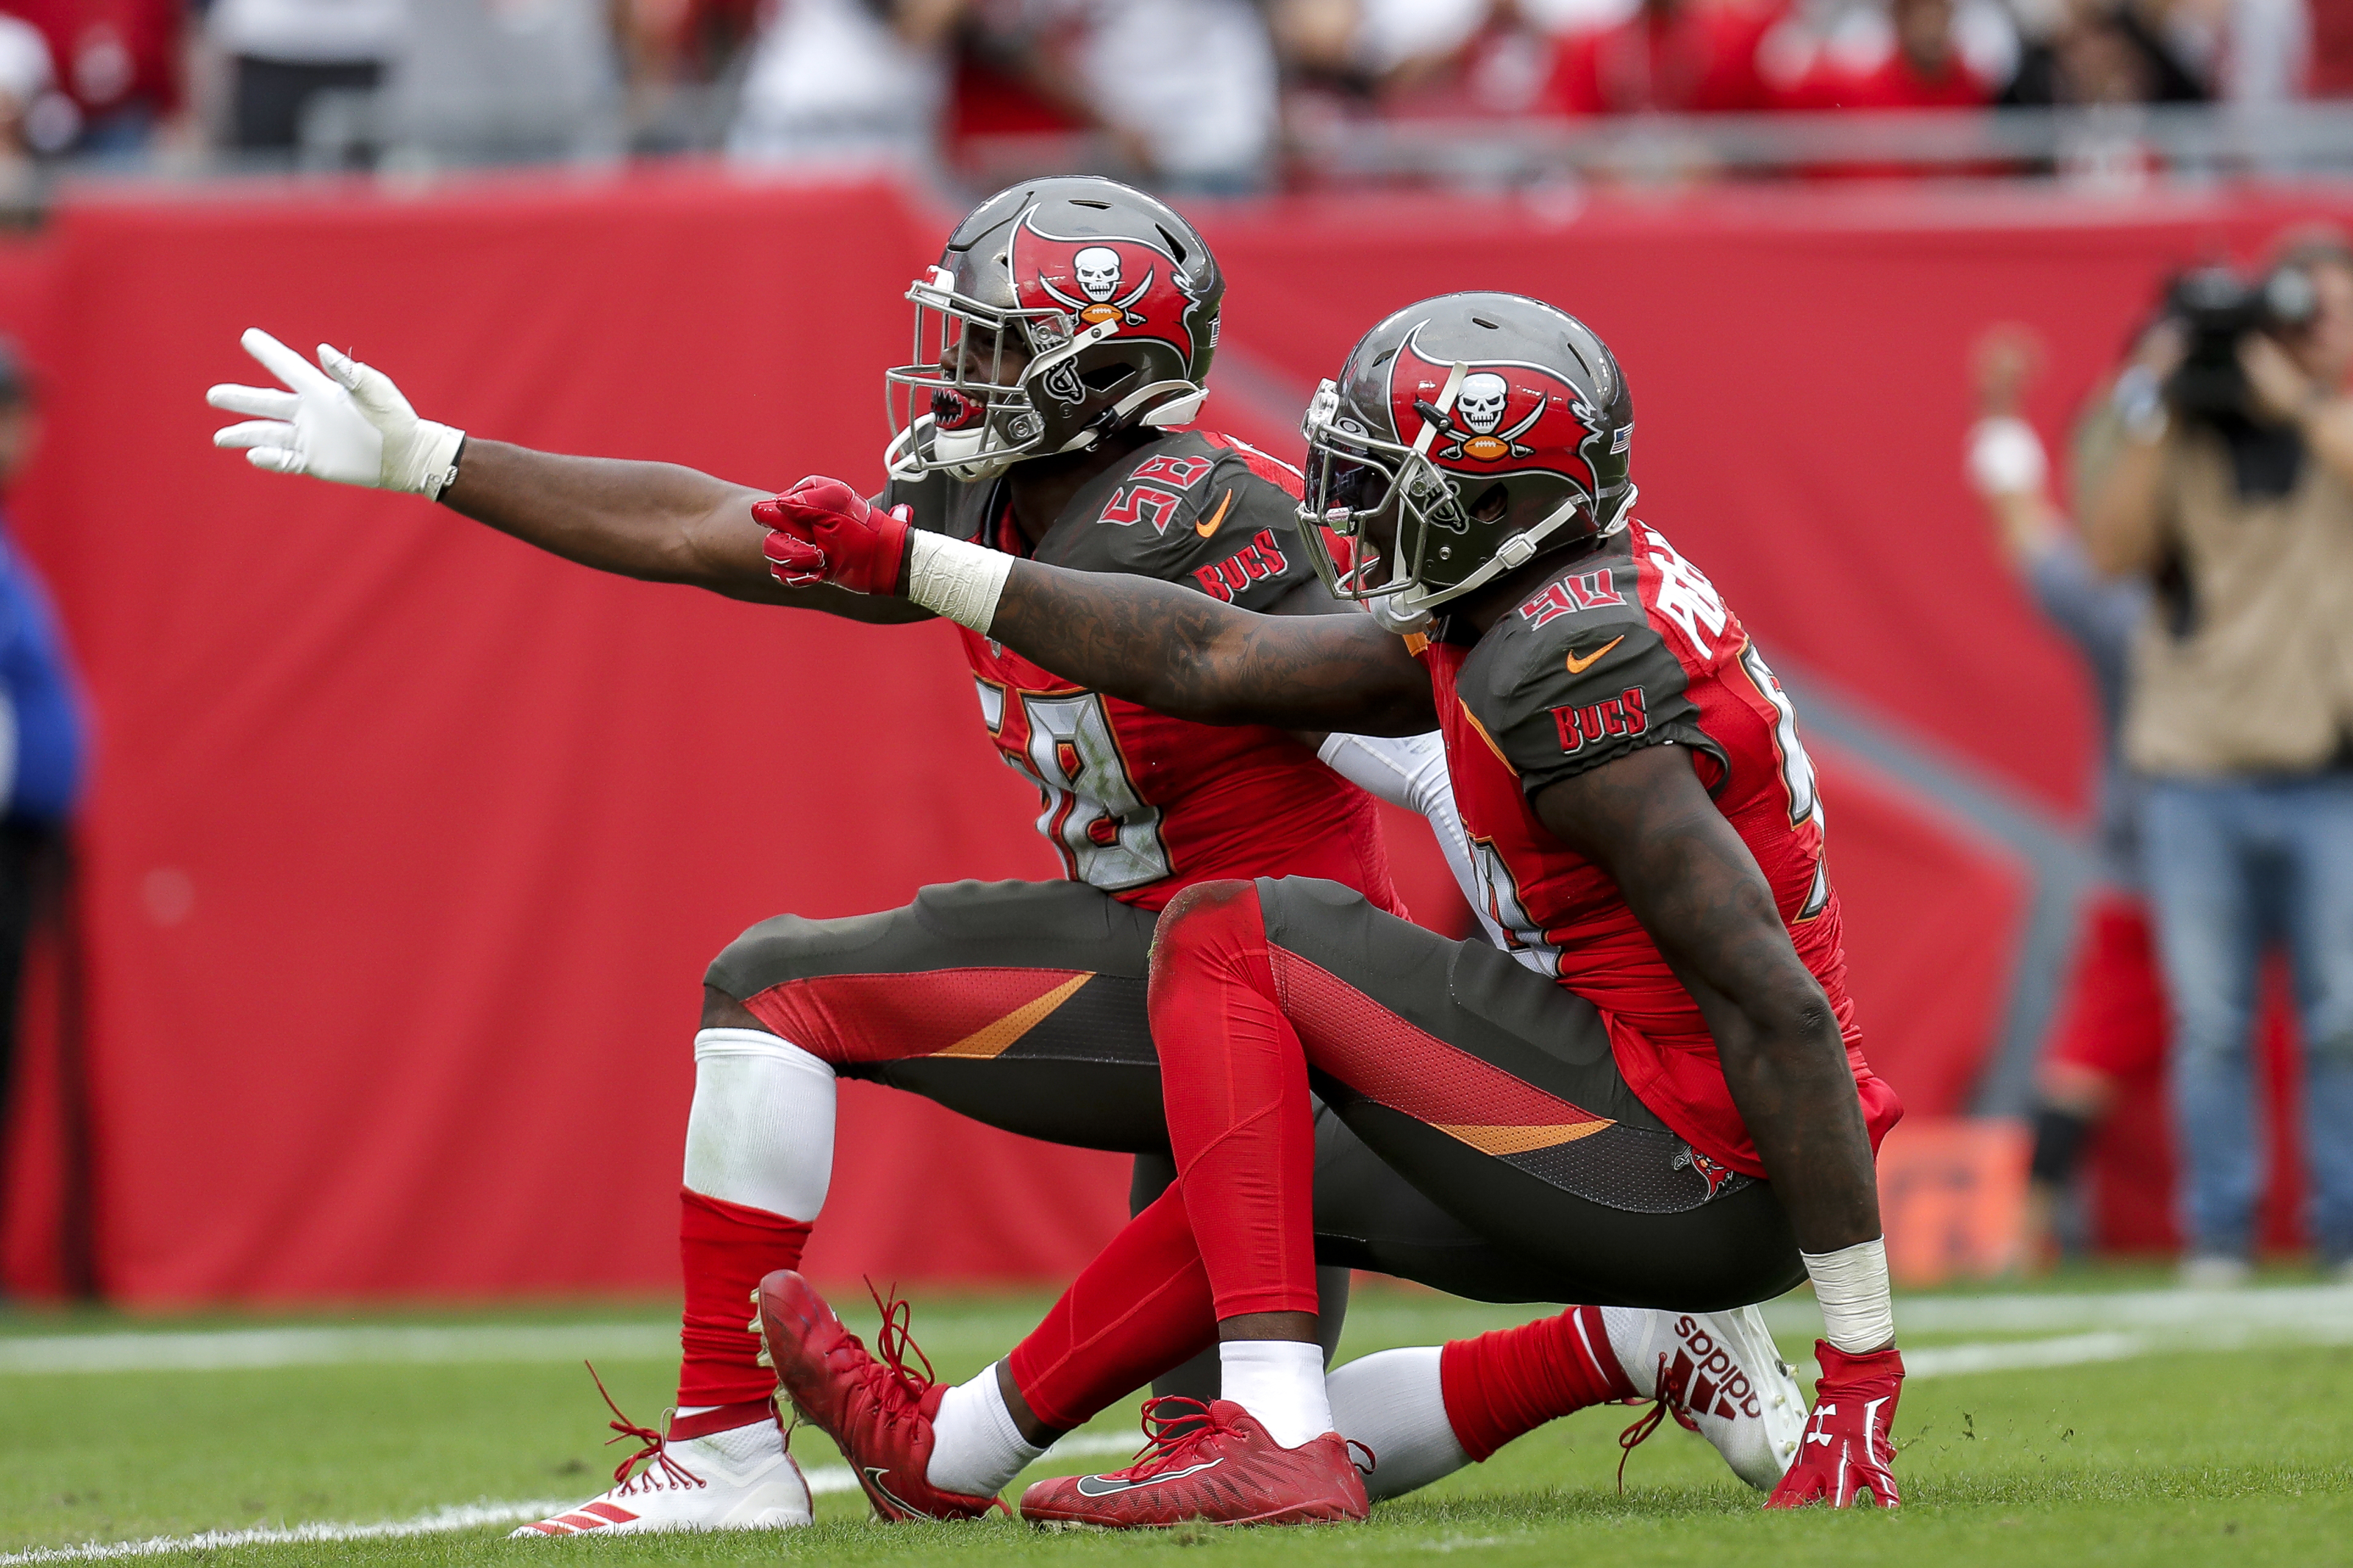 tampa bay buccaneers predicting the perfect 2020 schedule https thepewterplank com 2020 05 06 tampa bay buccaneers predicting perfect 2020 schedule